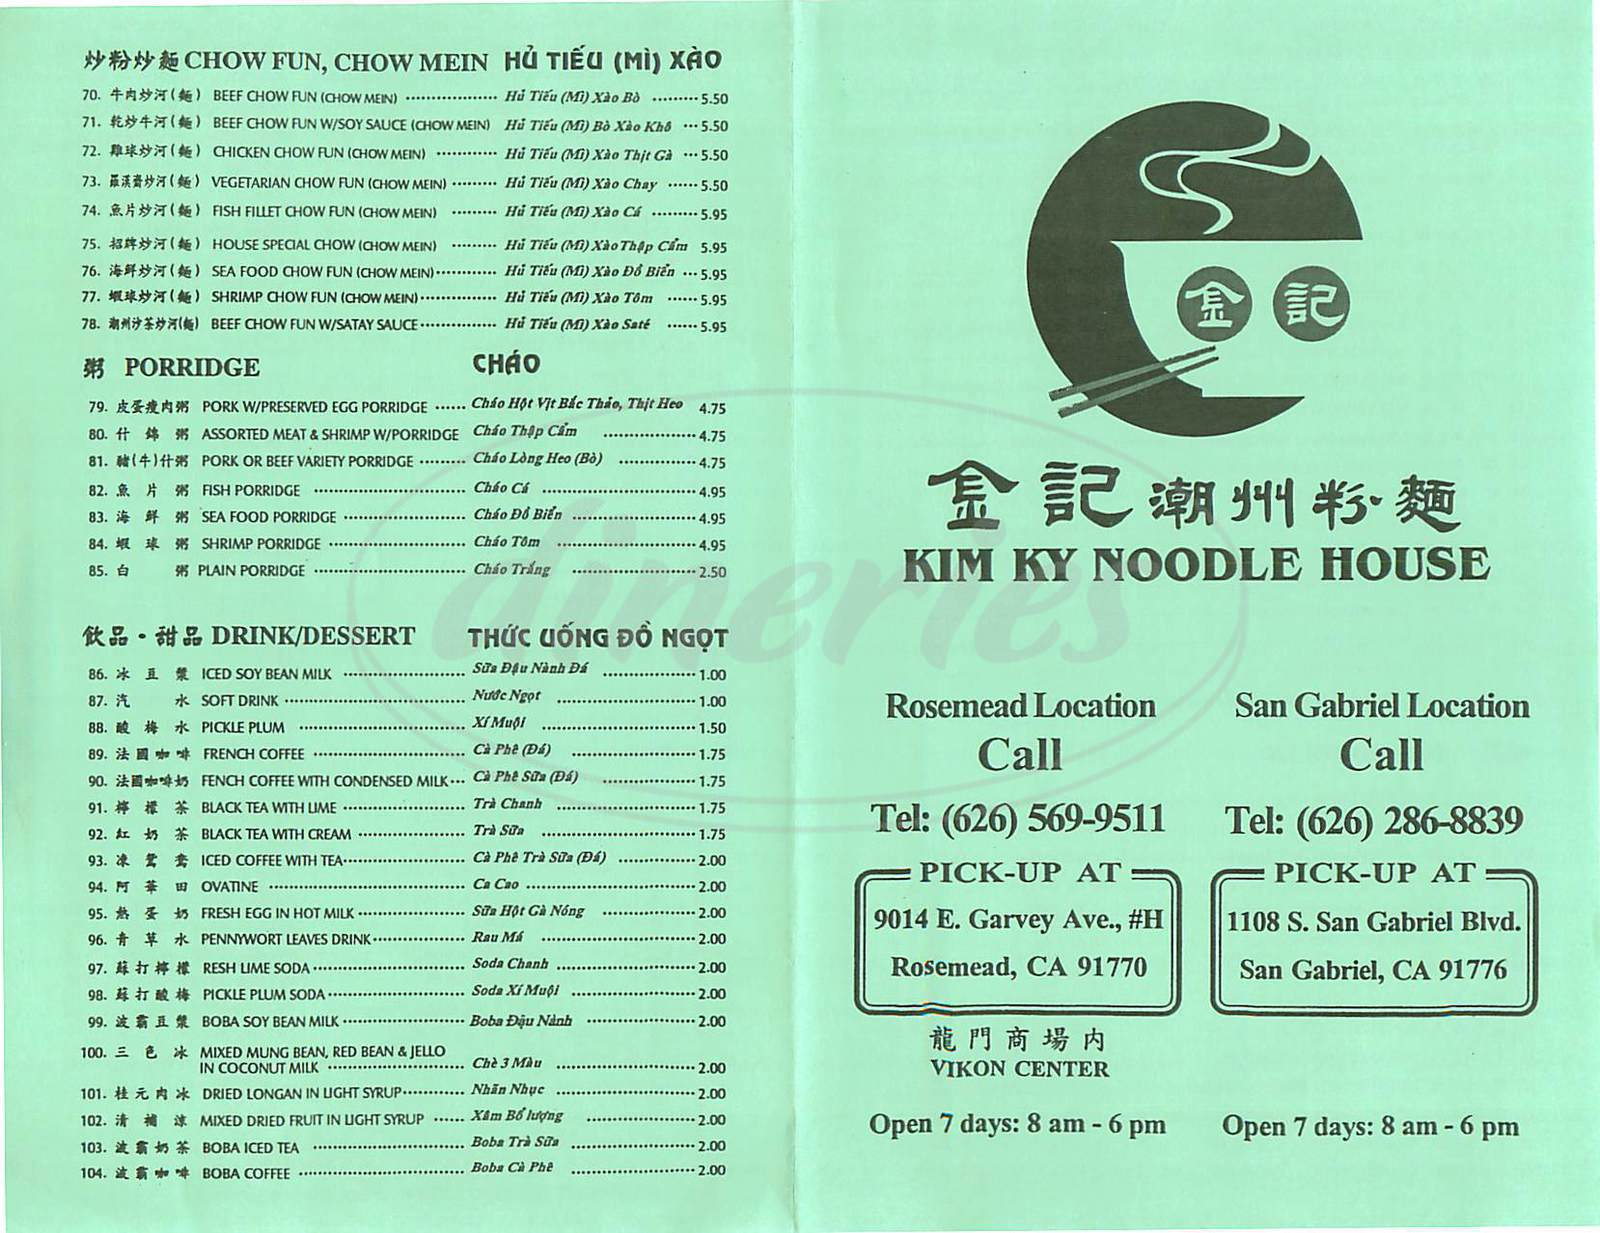 menu for Kim Ky Noodle House